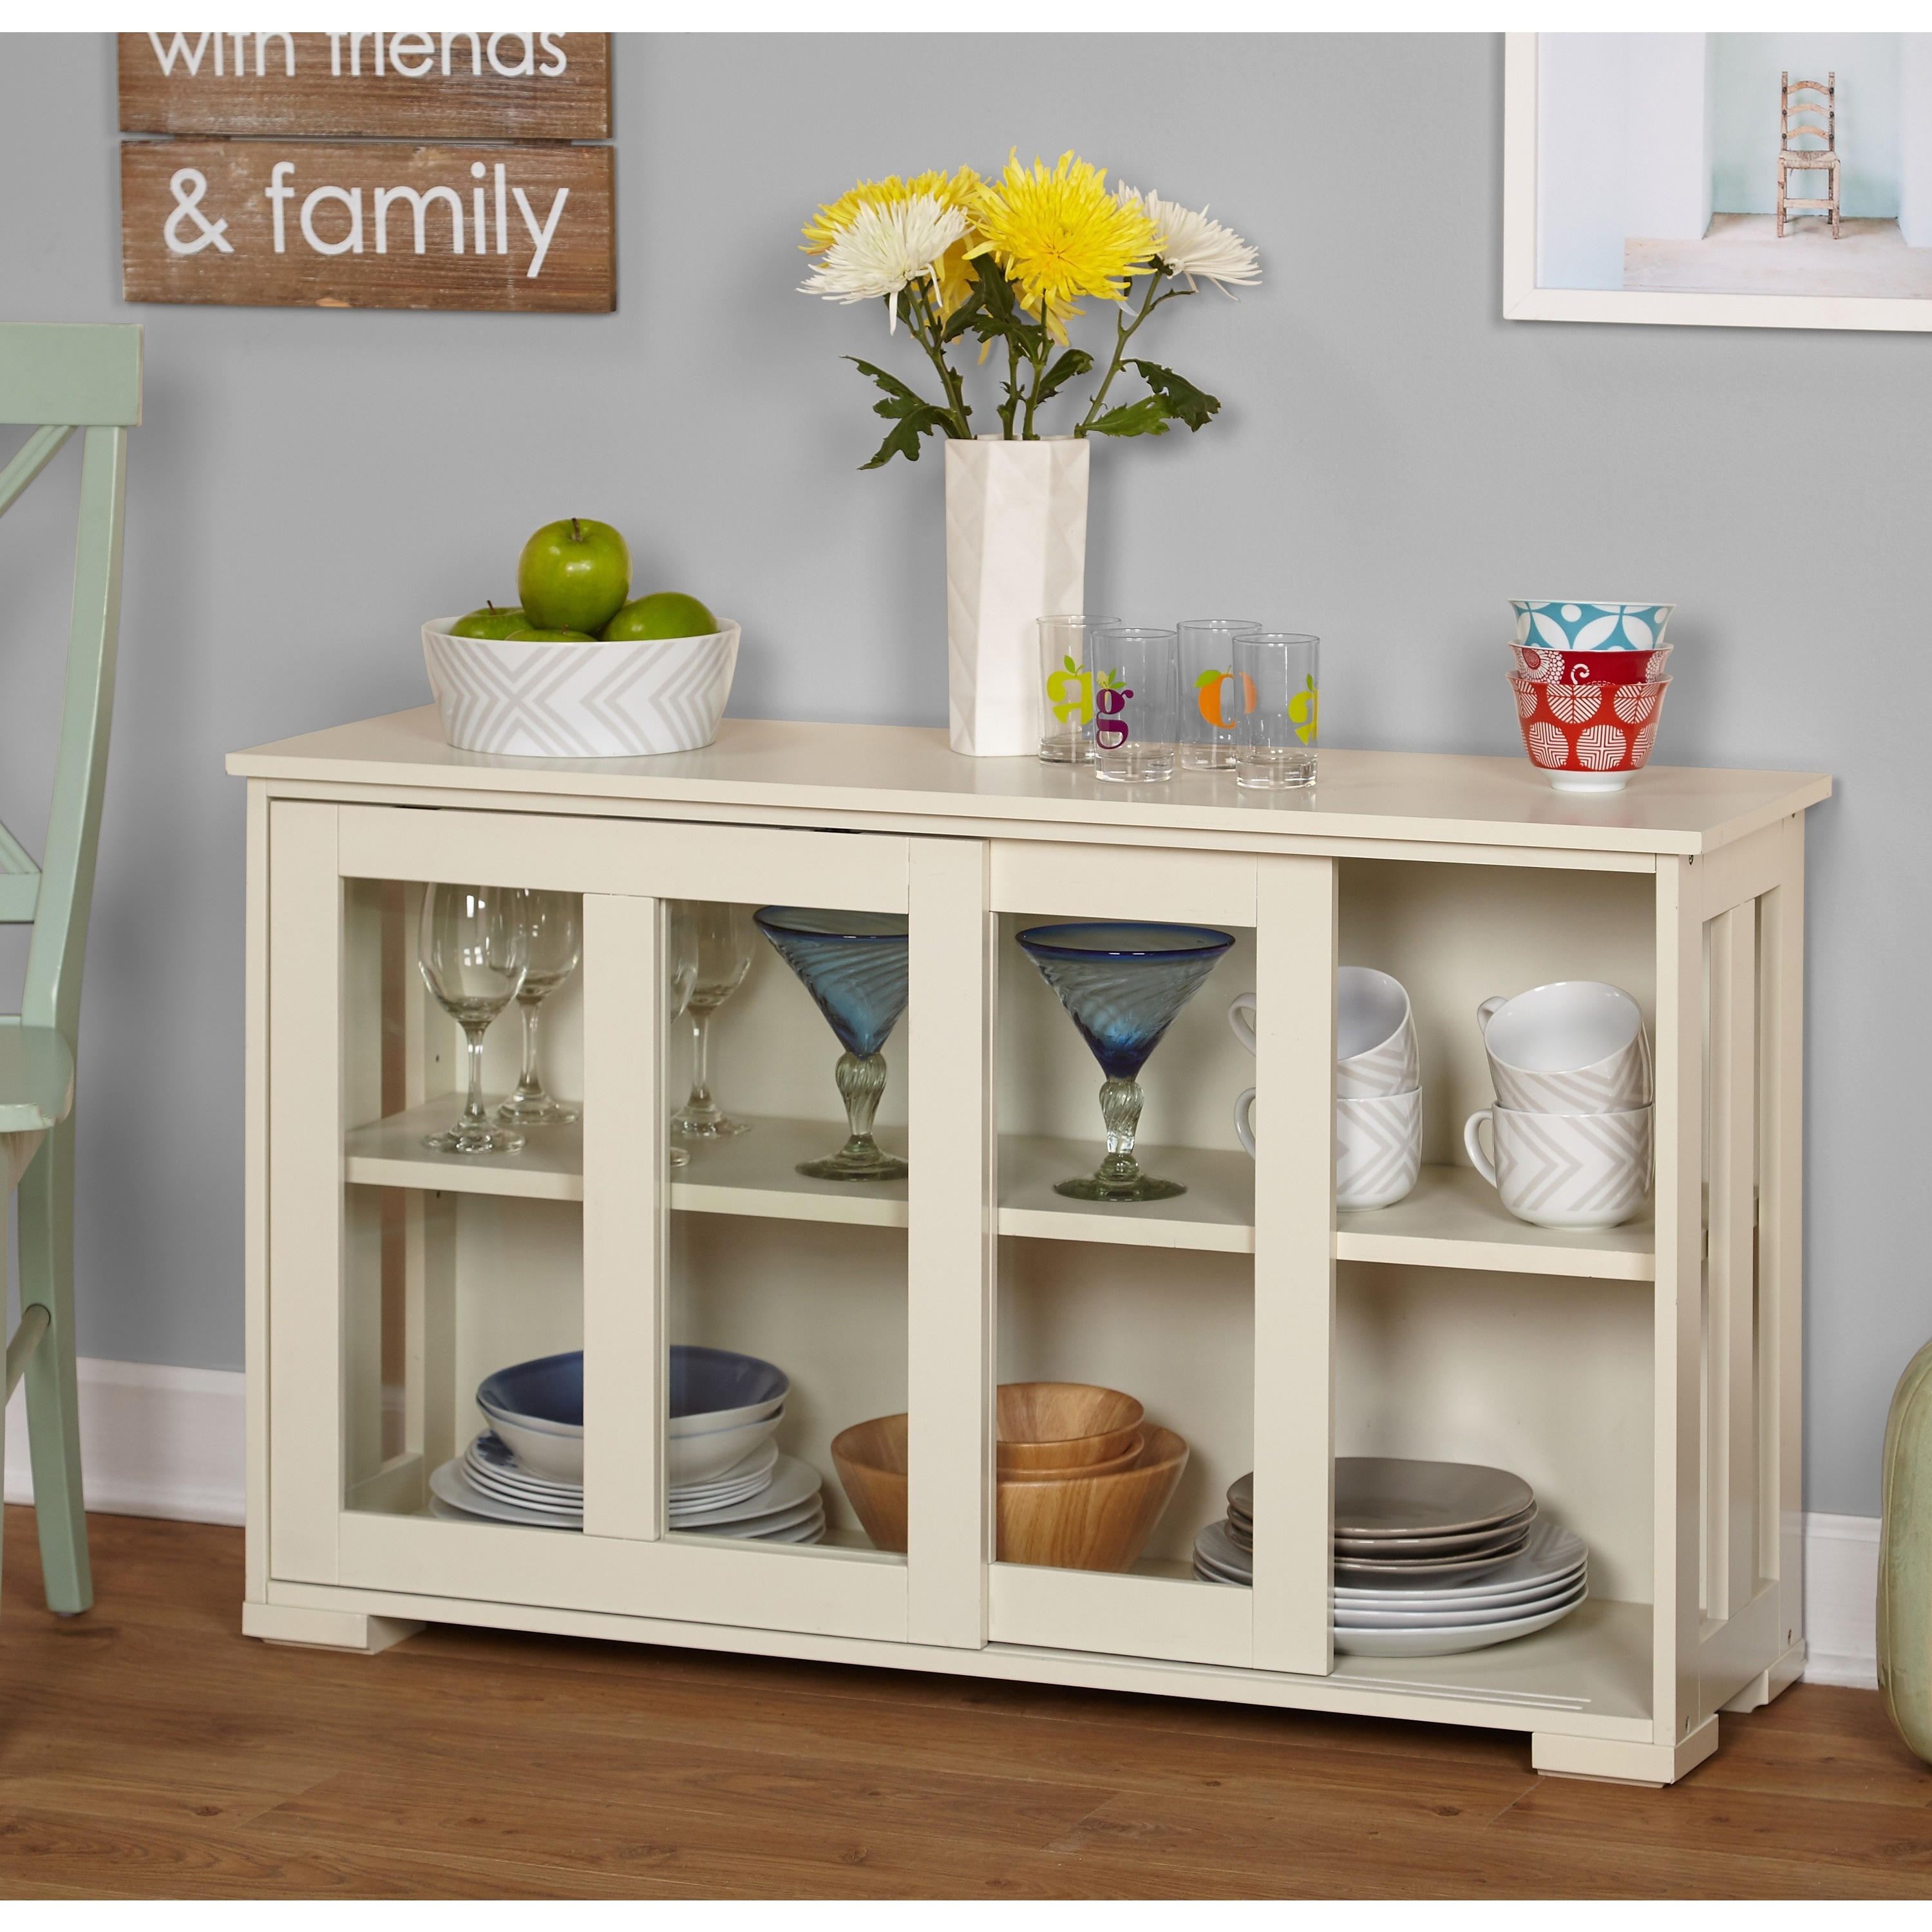 Shop simple living glass door stackable cabinet 25 x 42 x 14 free shipping today overstock com 6420584